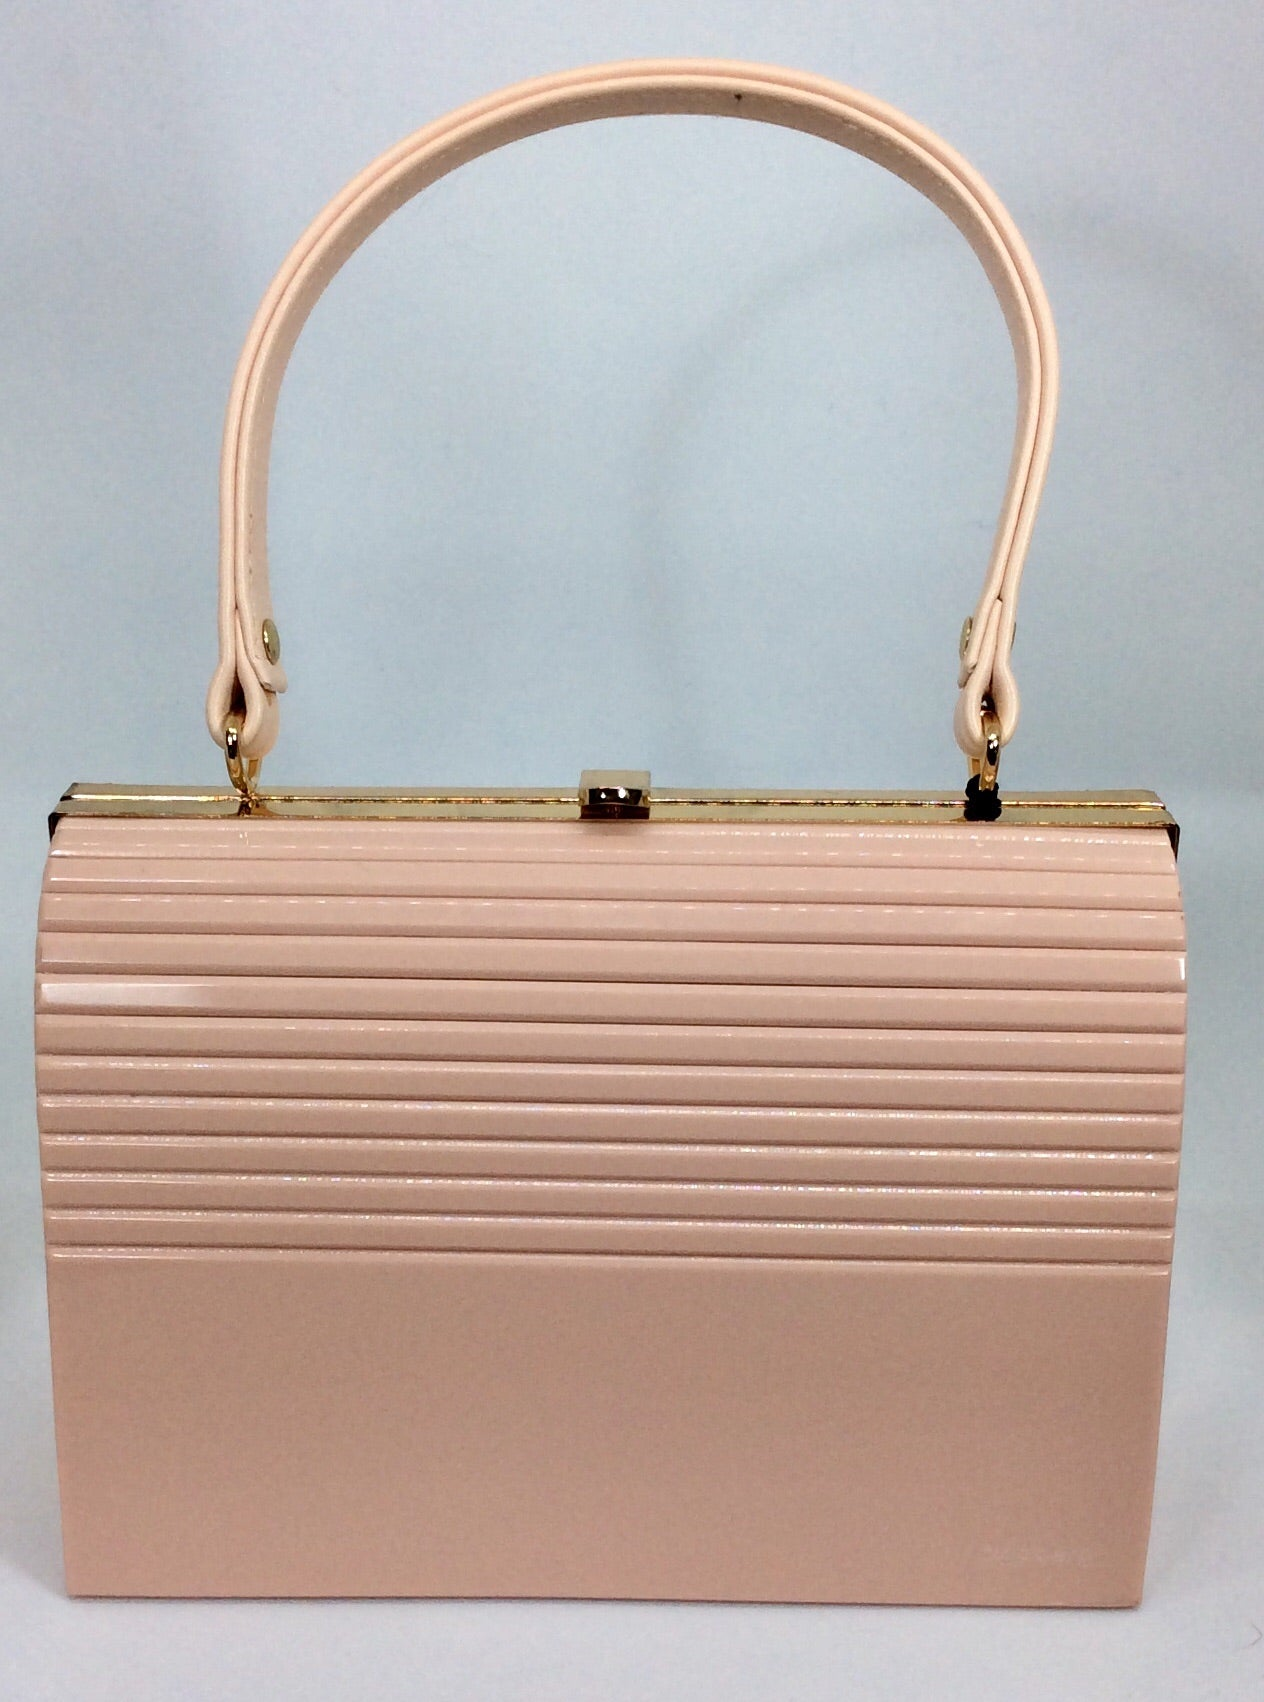 Salmon pink small bag with gold chain